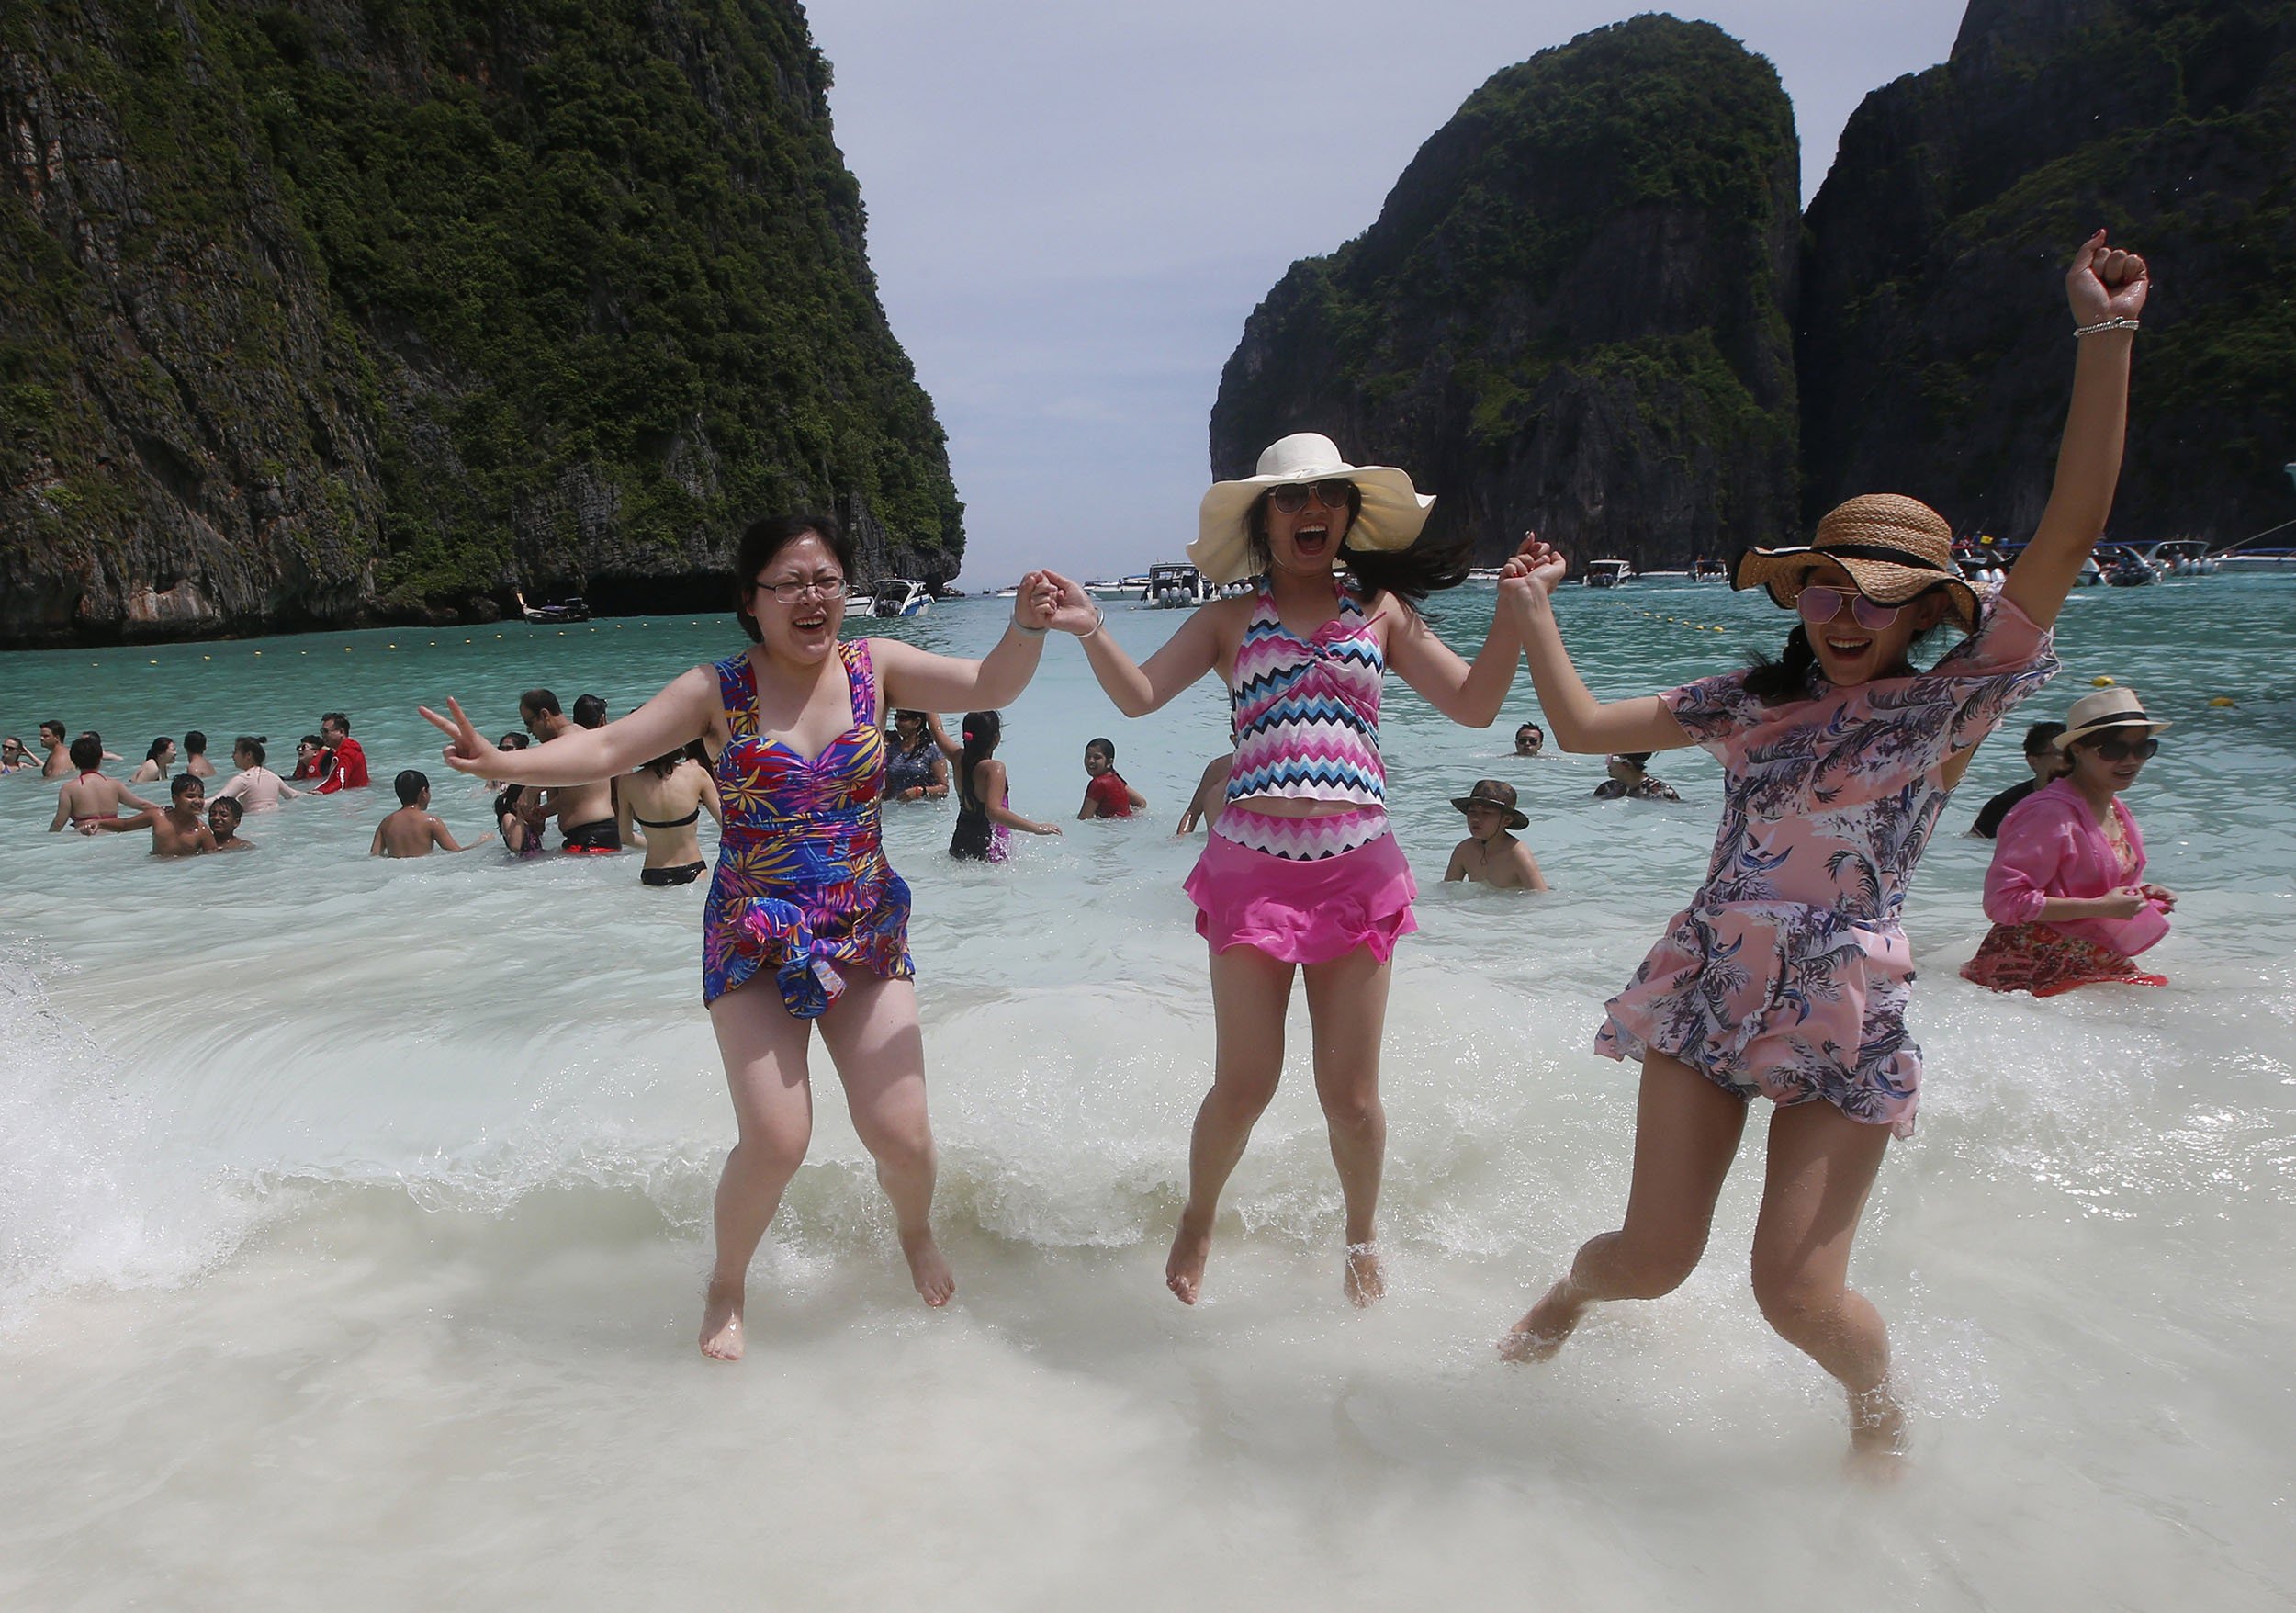 Ailing-Thai-beach-made-famous-by-DiCaprio-film-gets-tourist-timeout